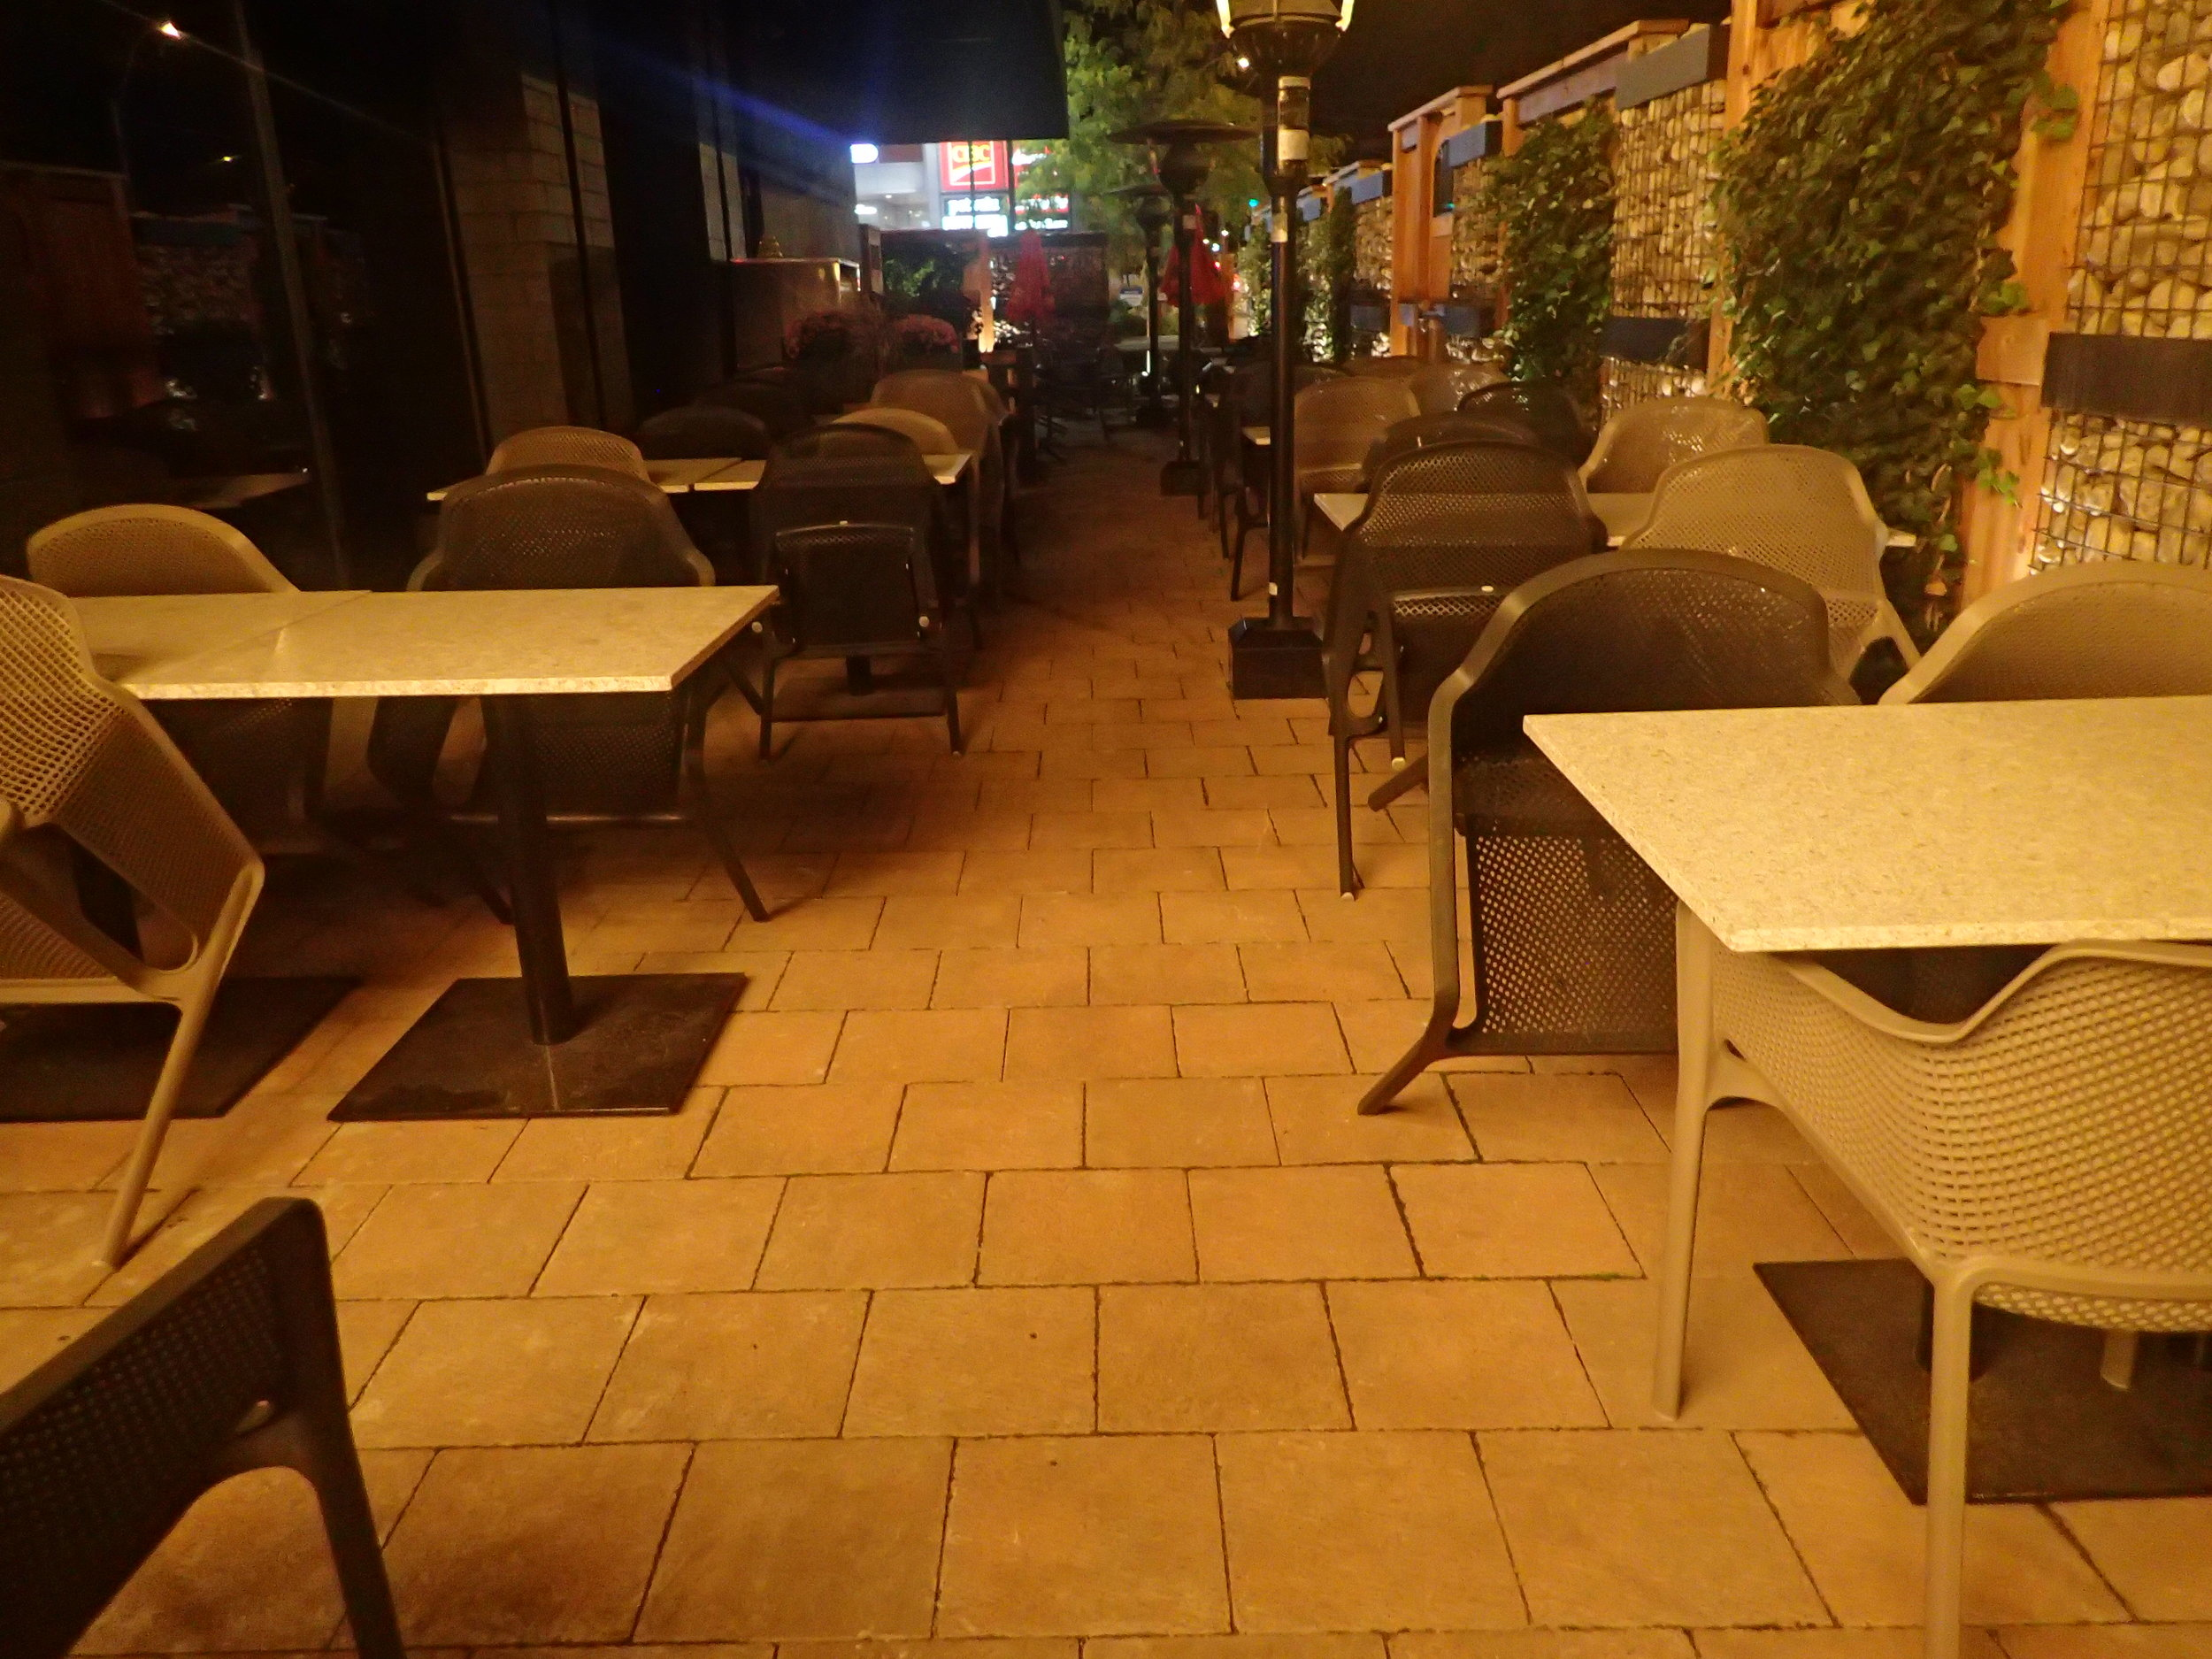 Evening picture of the accessible patio